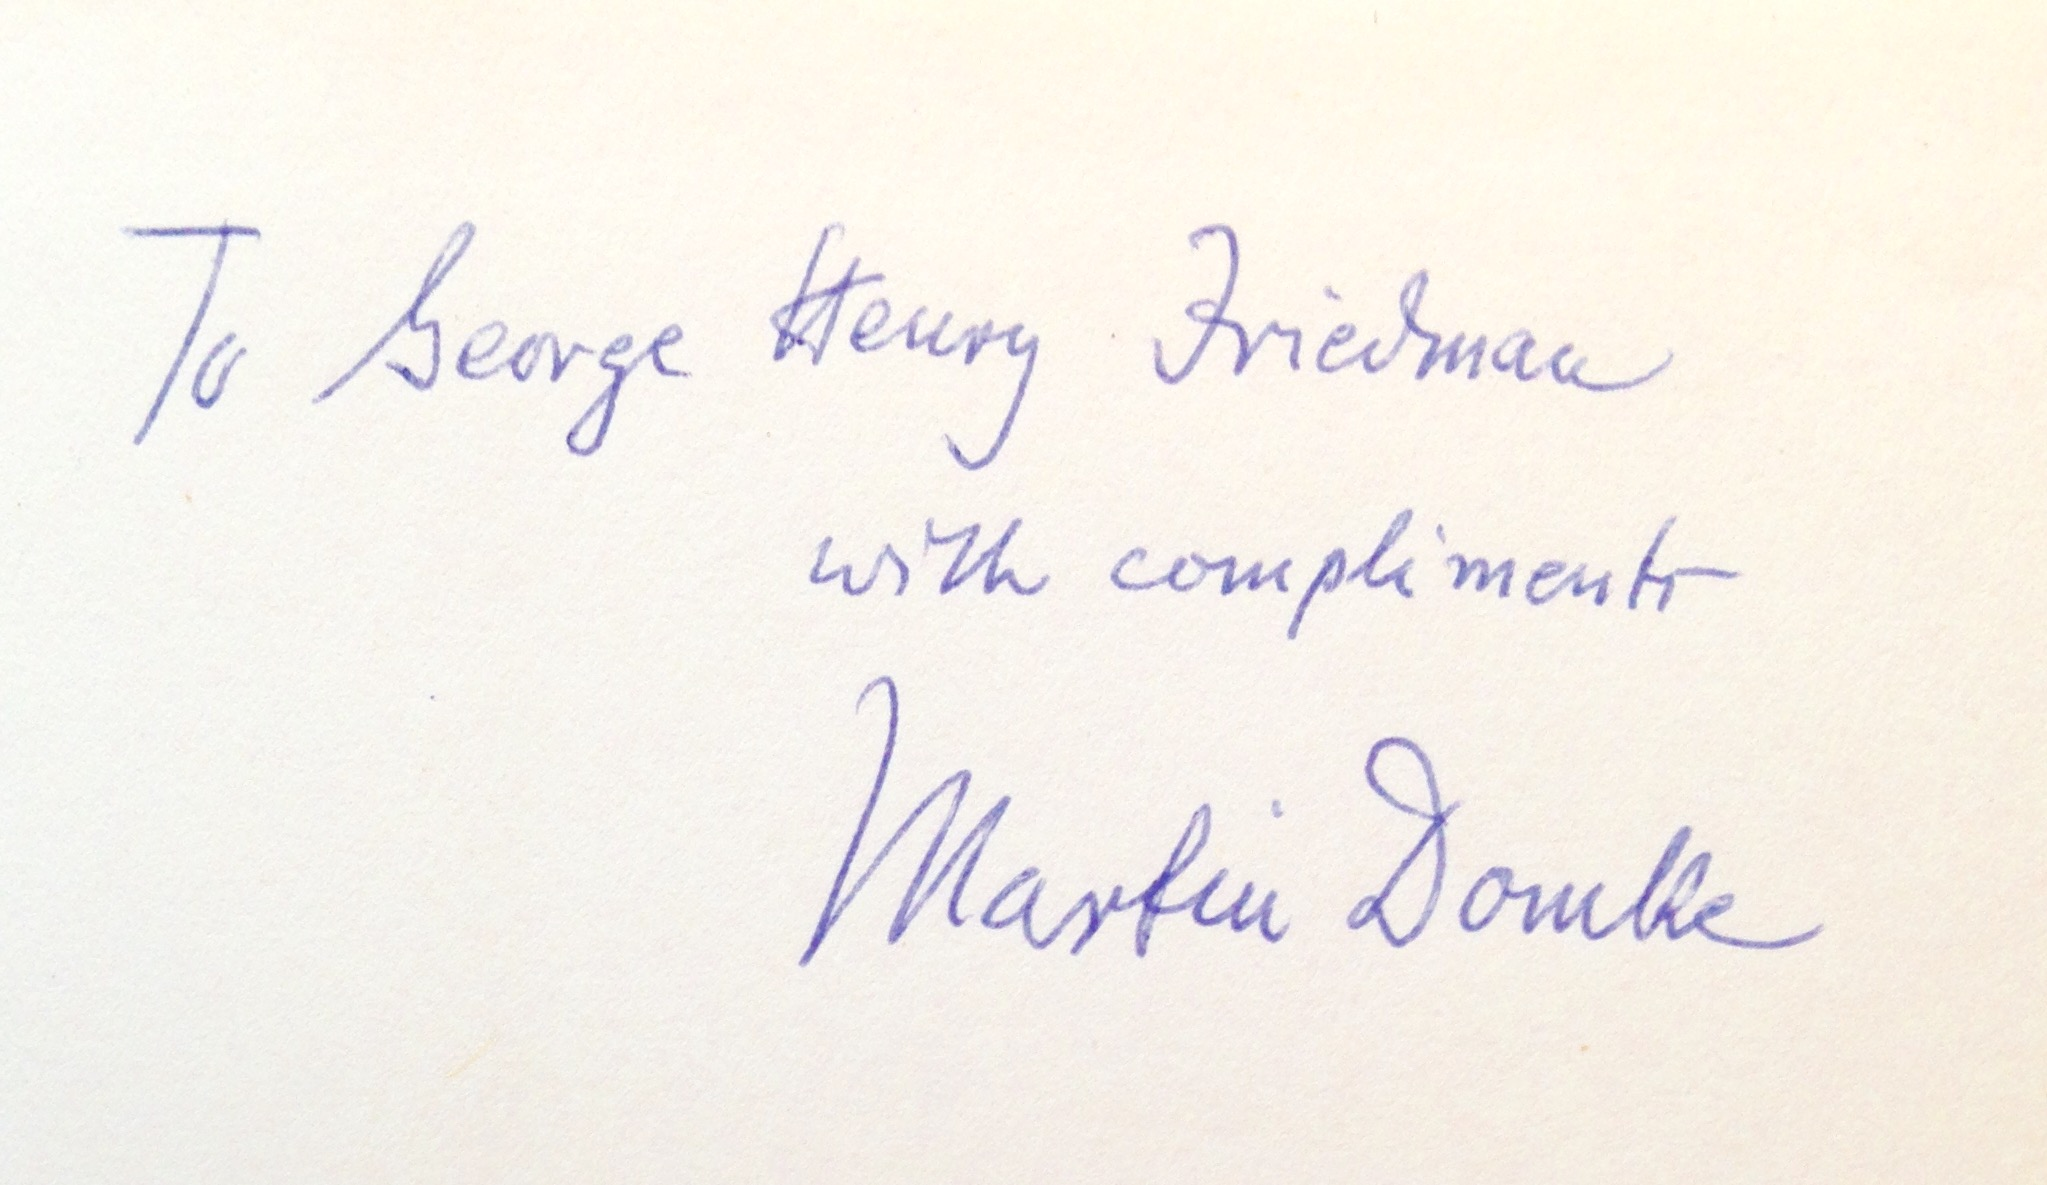 """""""To George Henry Friedman: with compliments."""" -  Martin Domke, arbitration icon"""